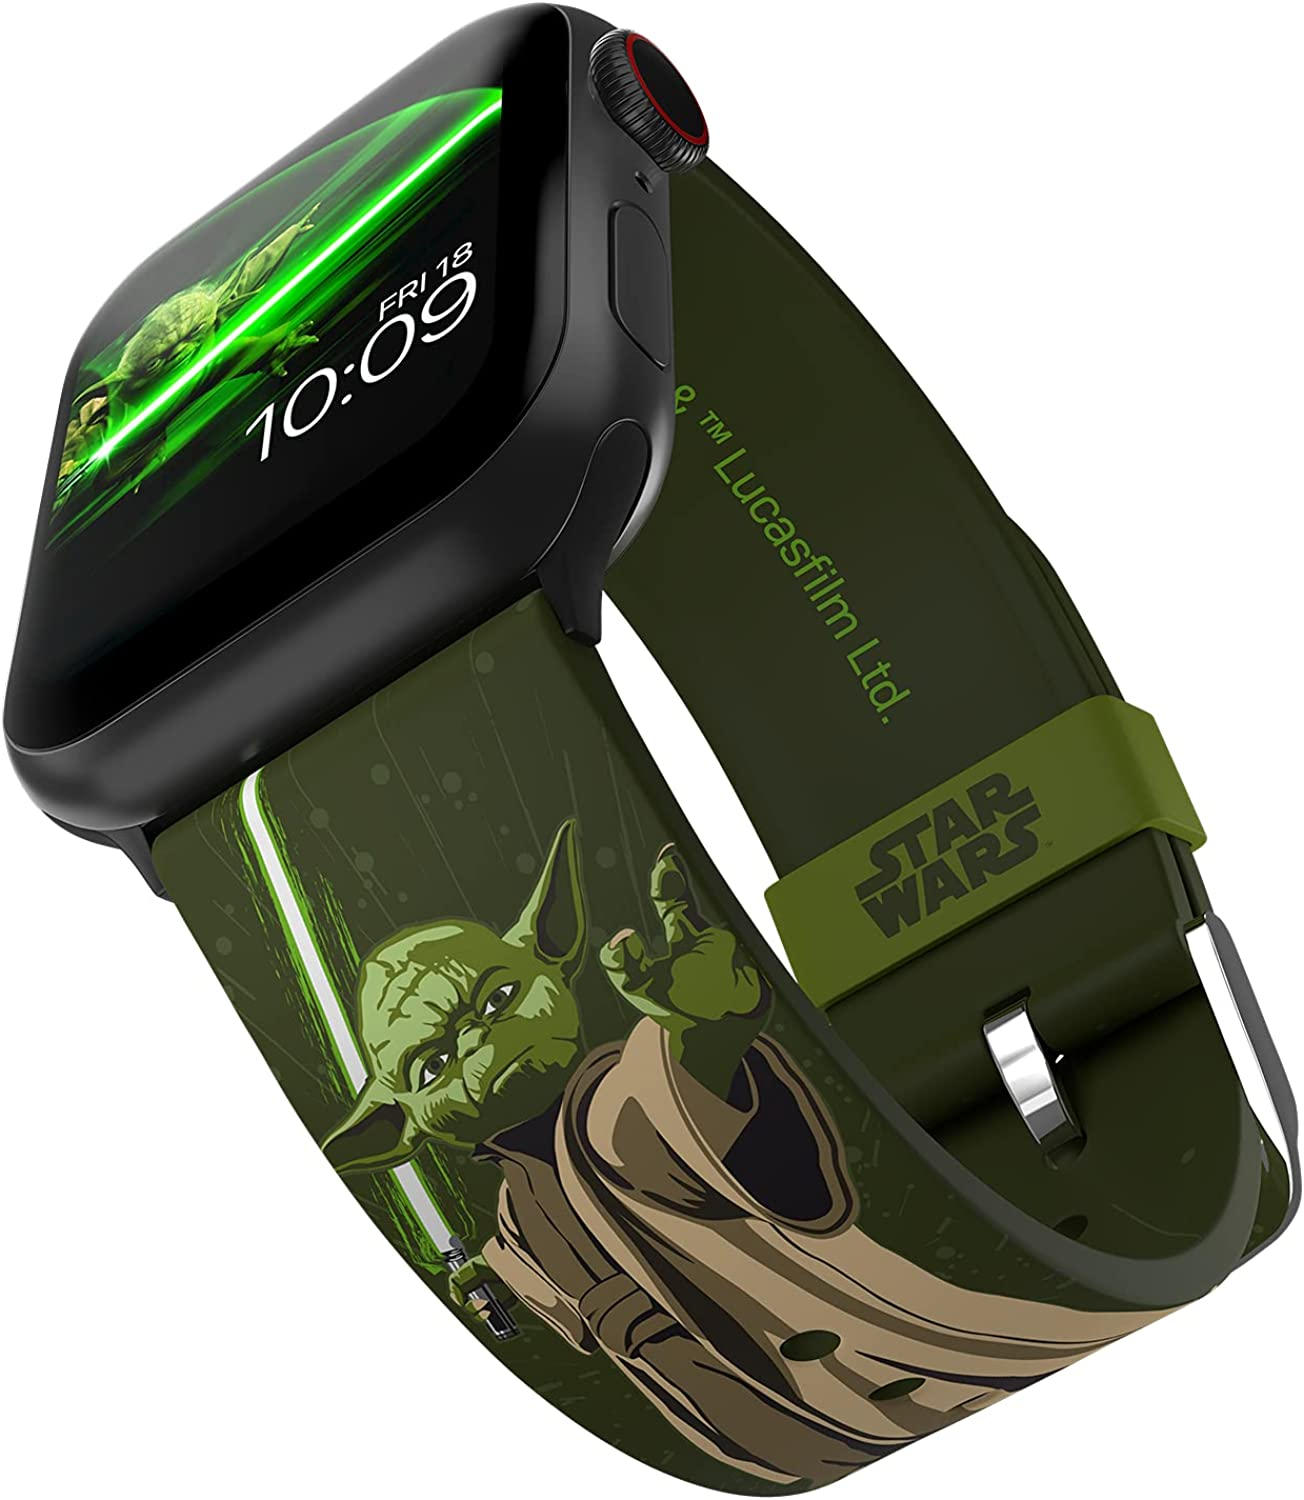 Star Wars - Yoda Smartwatch Band - Officially Licensed, Compatible with Apple Watch (not Included) - Fits 38mm, 40mm, 42mm and 44mm